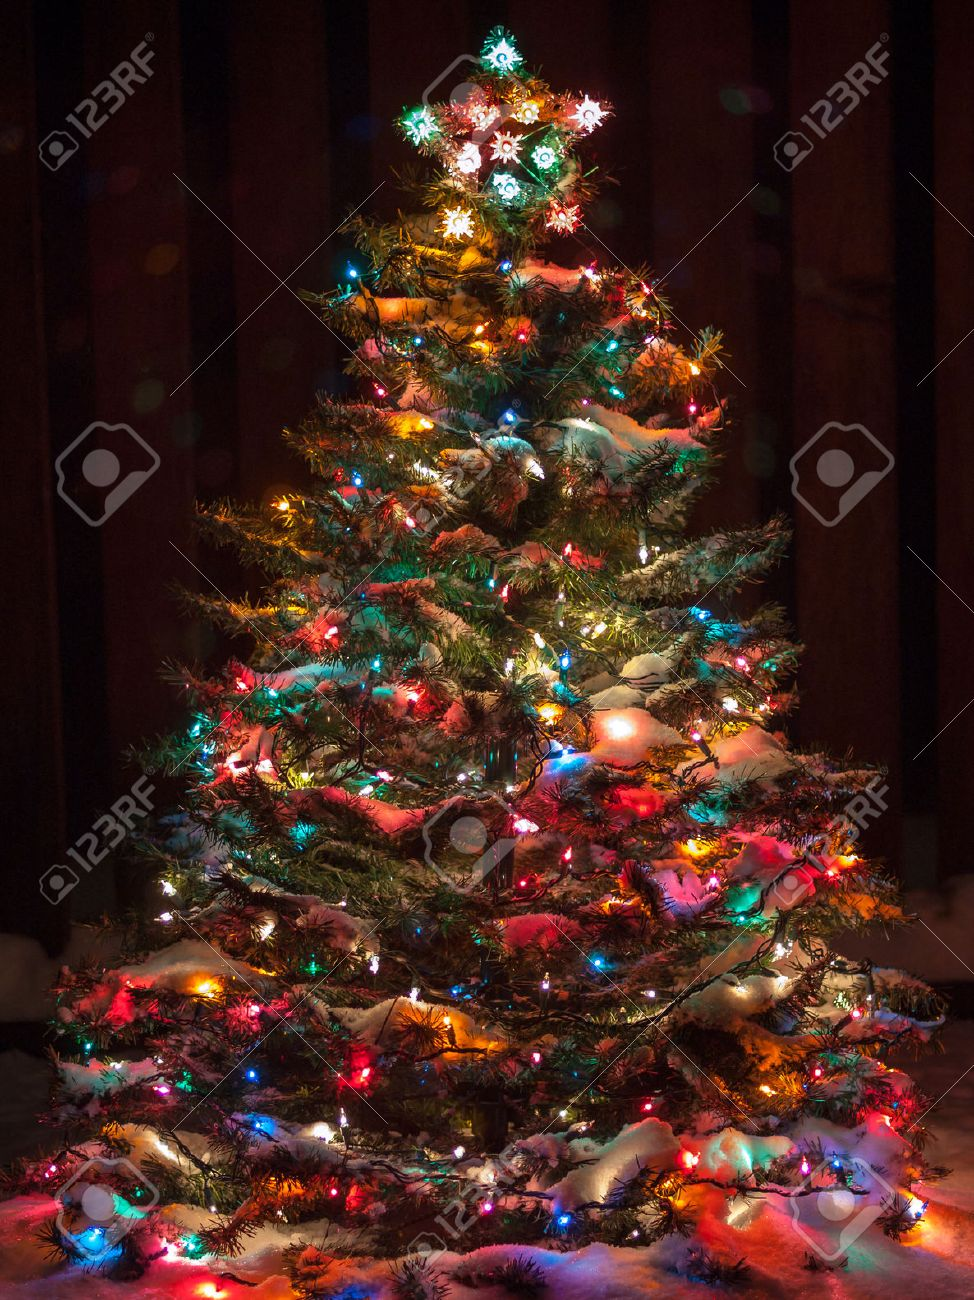 Snow Covered Christmas Tree With Multi Colored Lights Stock Photo ...